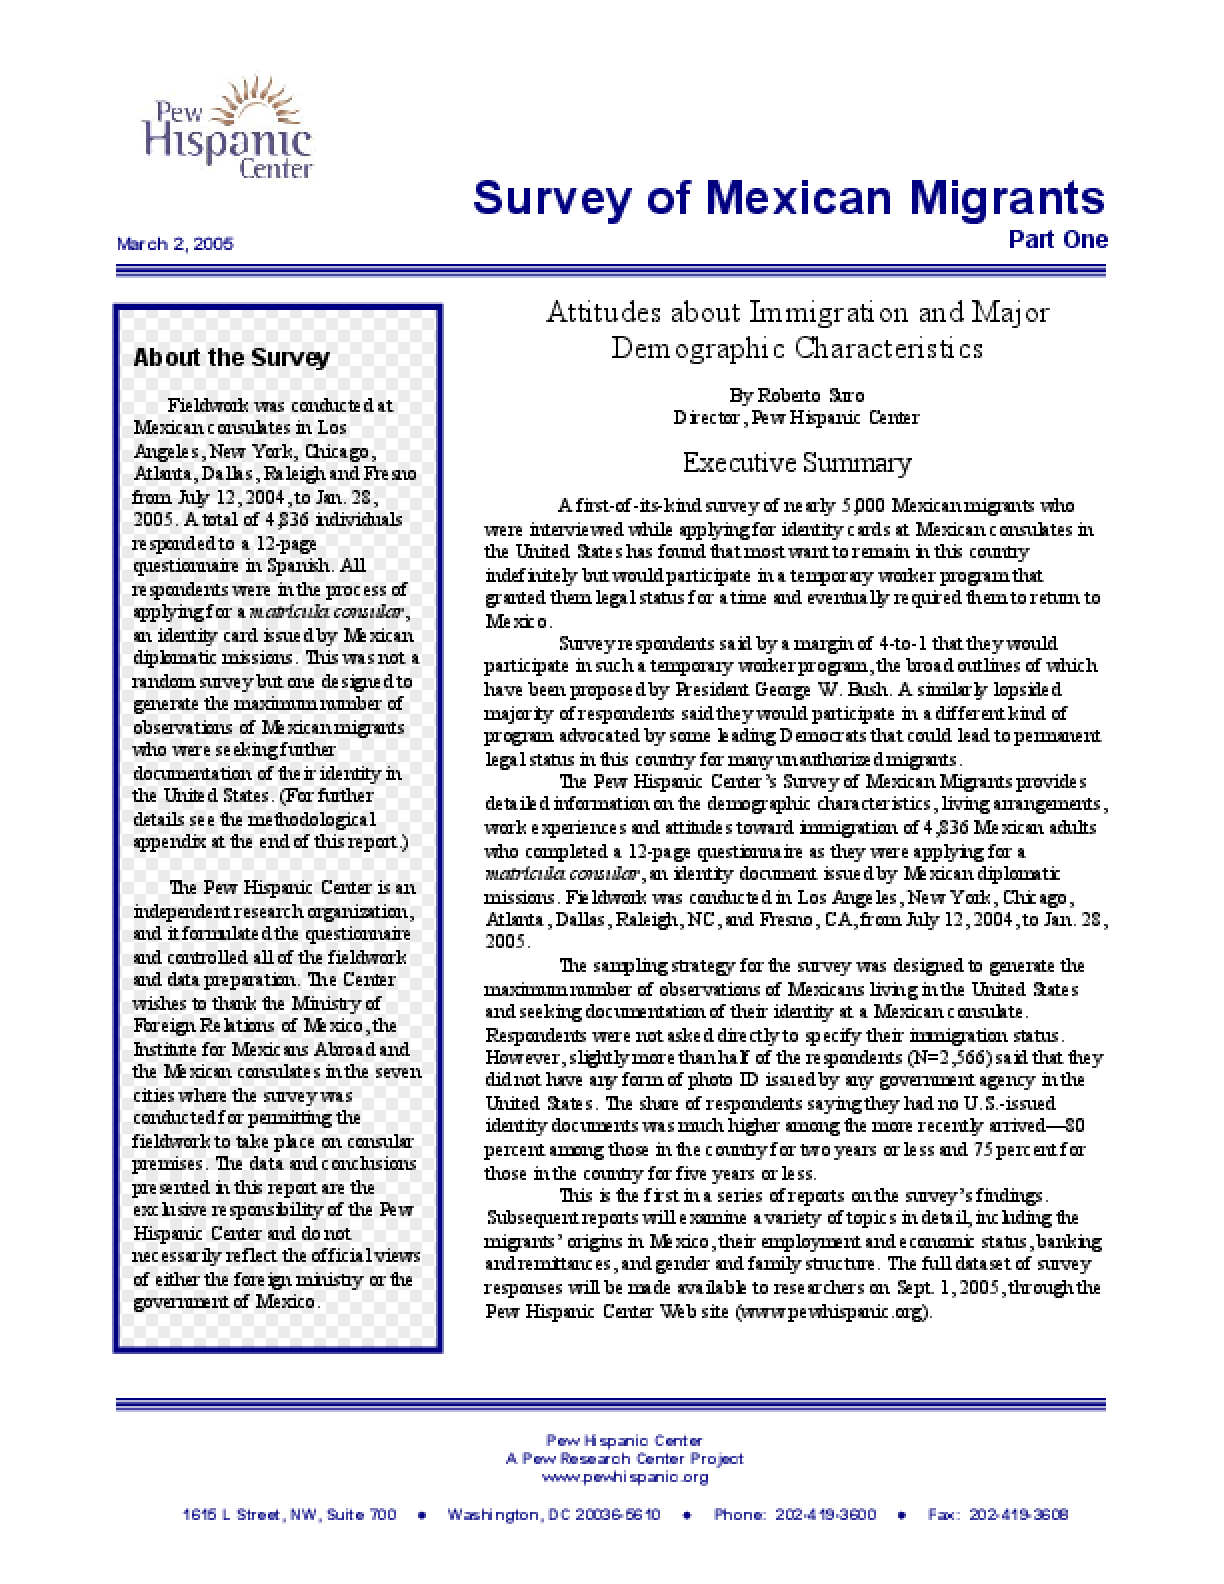 Survey of Mexican Migrants, Part One: Attitudes About Immigration and Major Demographic Characteristics